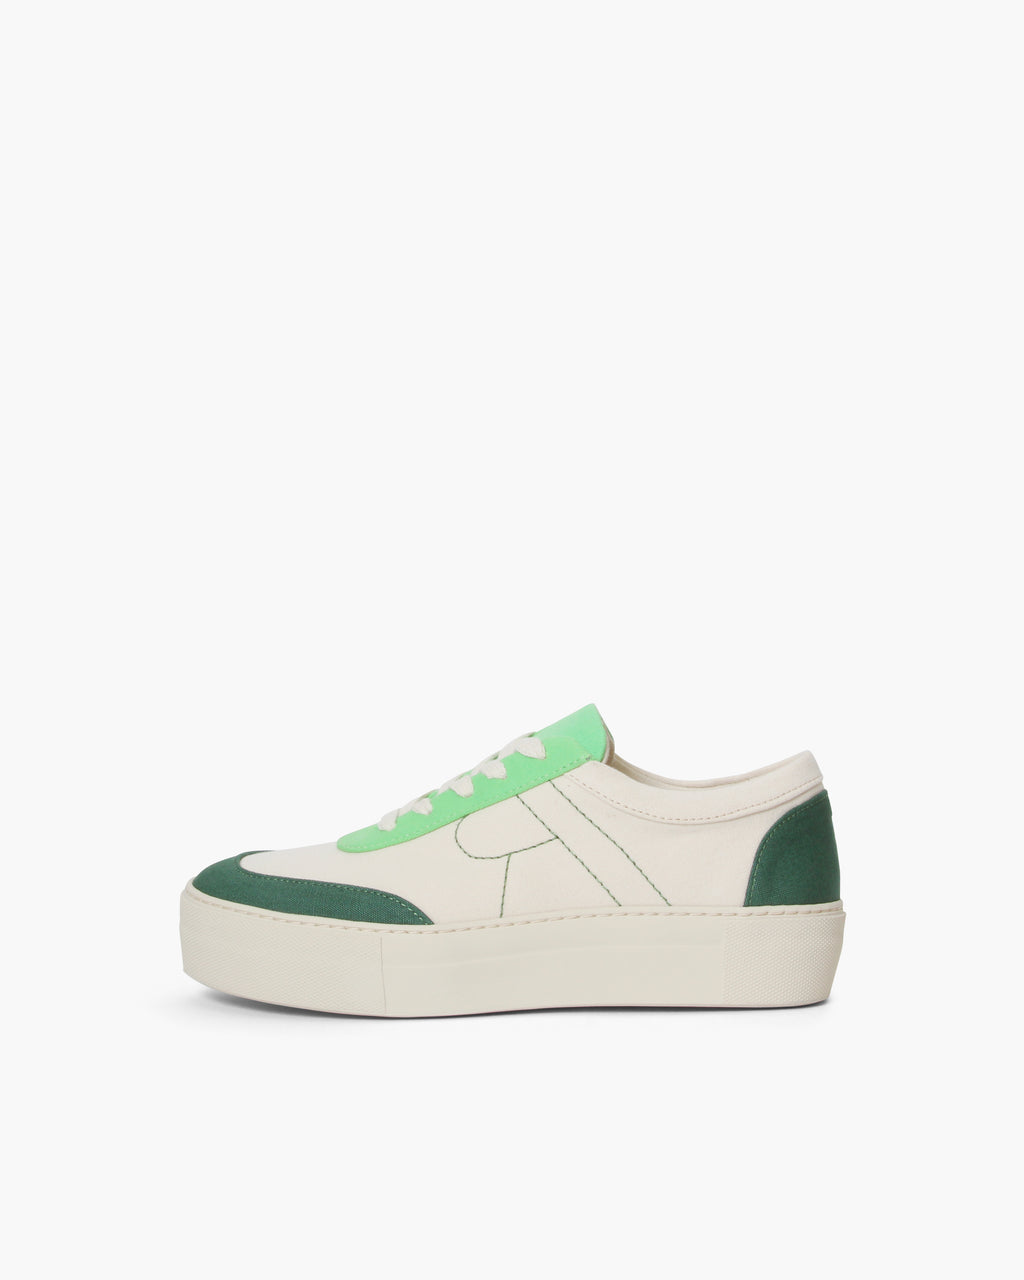 Bailey Sneakers Cotton Canvas Green - UNISEX